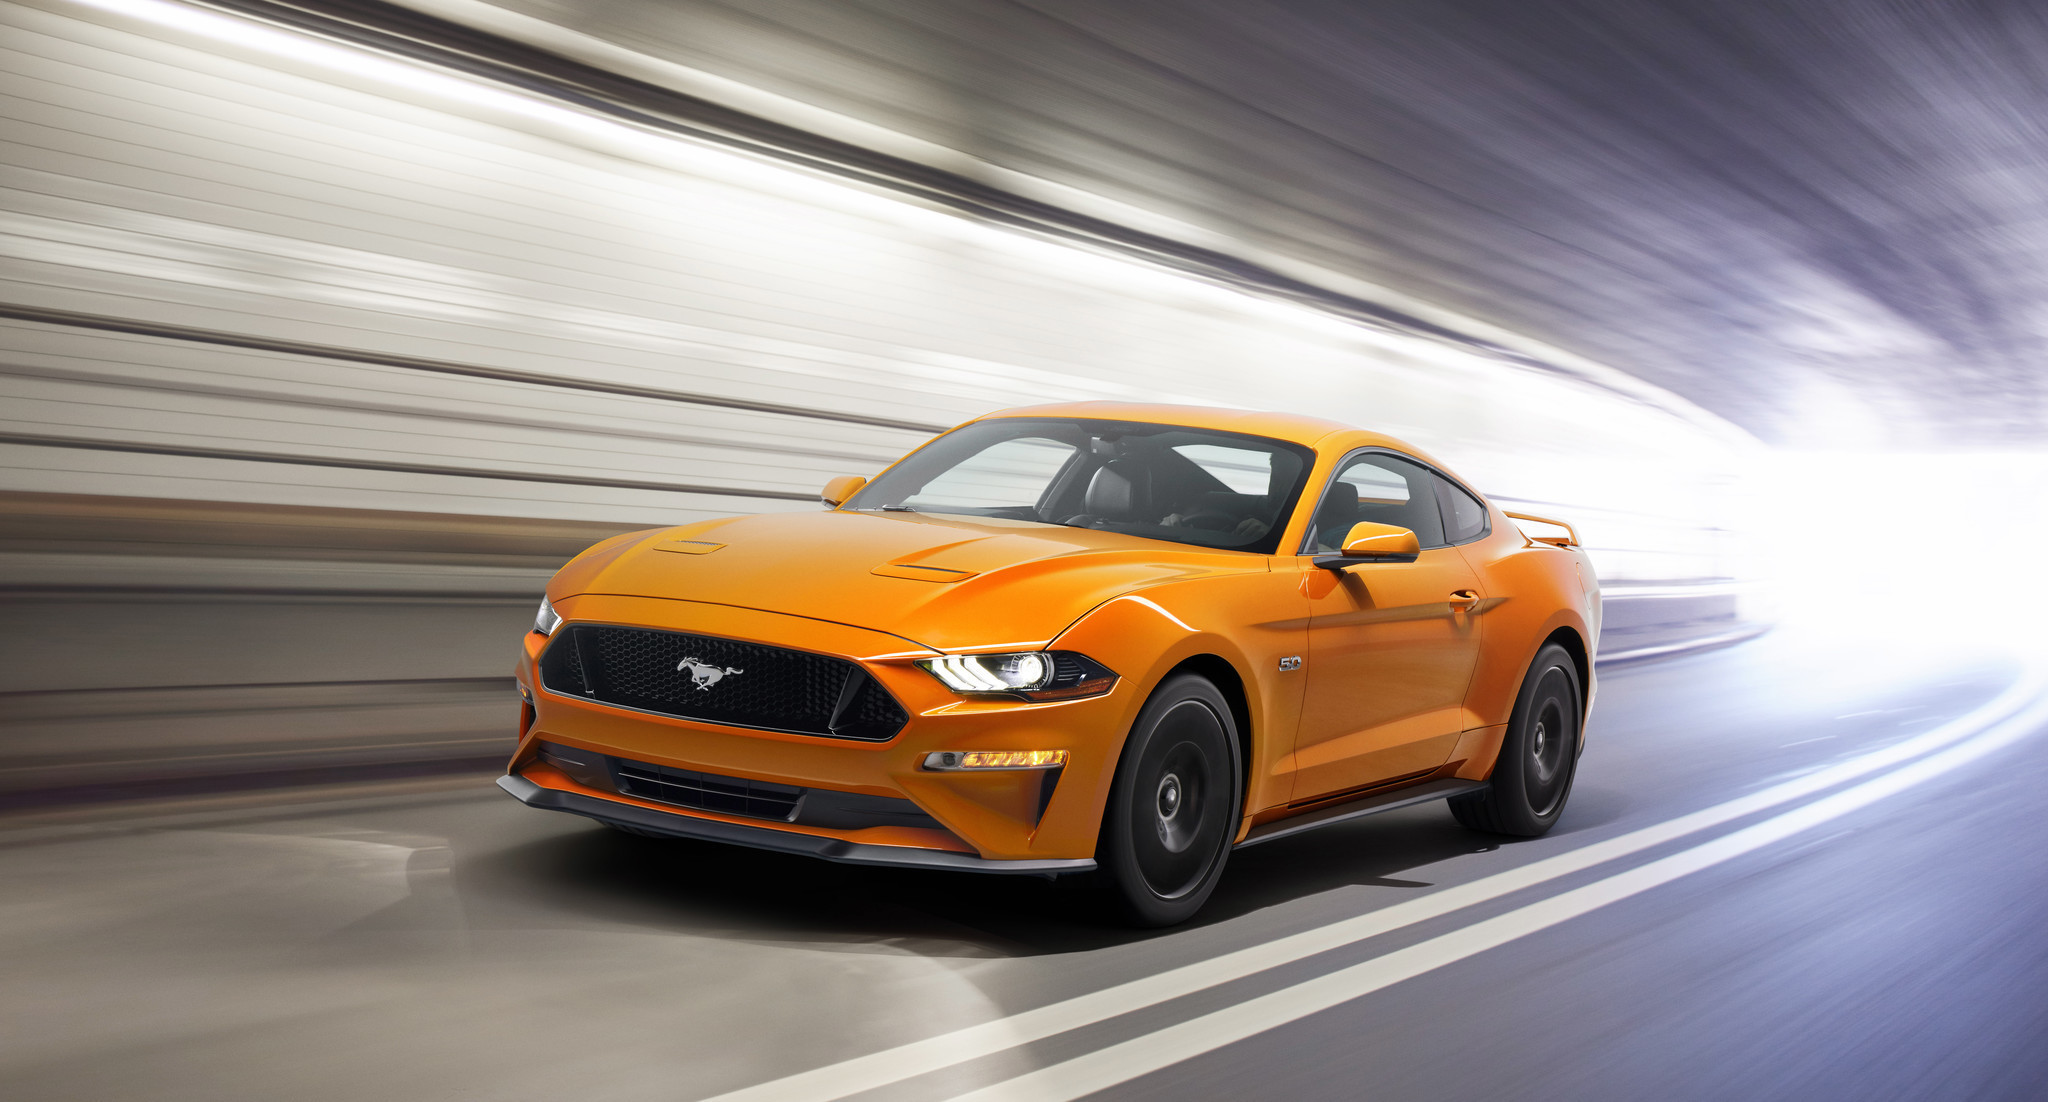 Ford unleashes a new Mustang GT for 2018